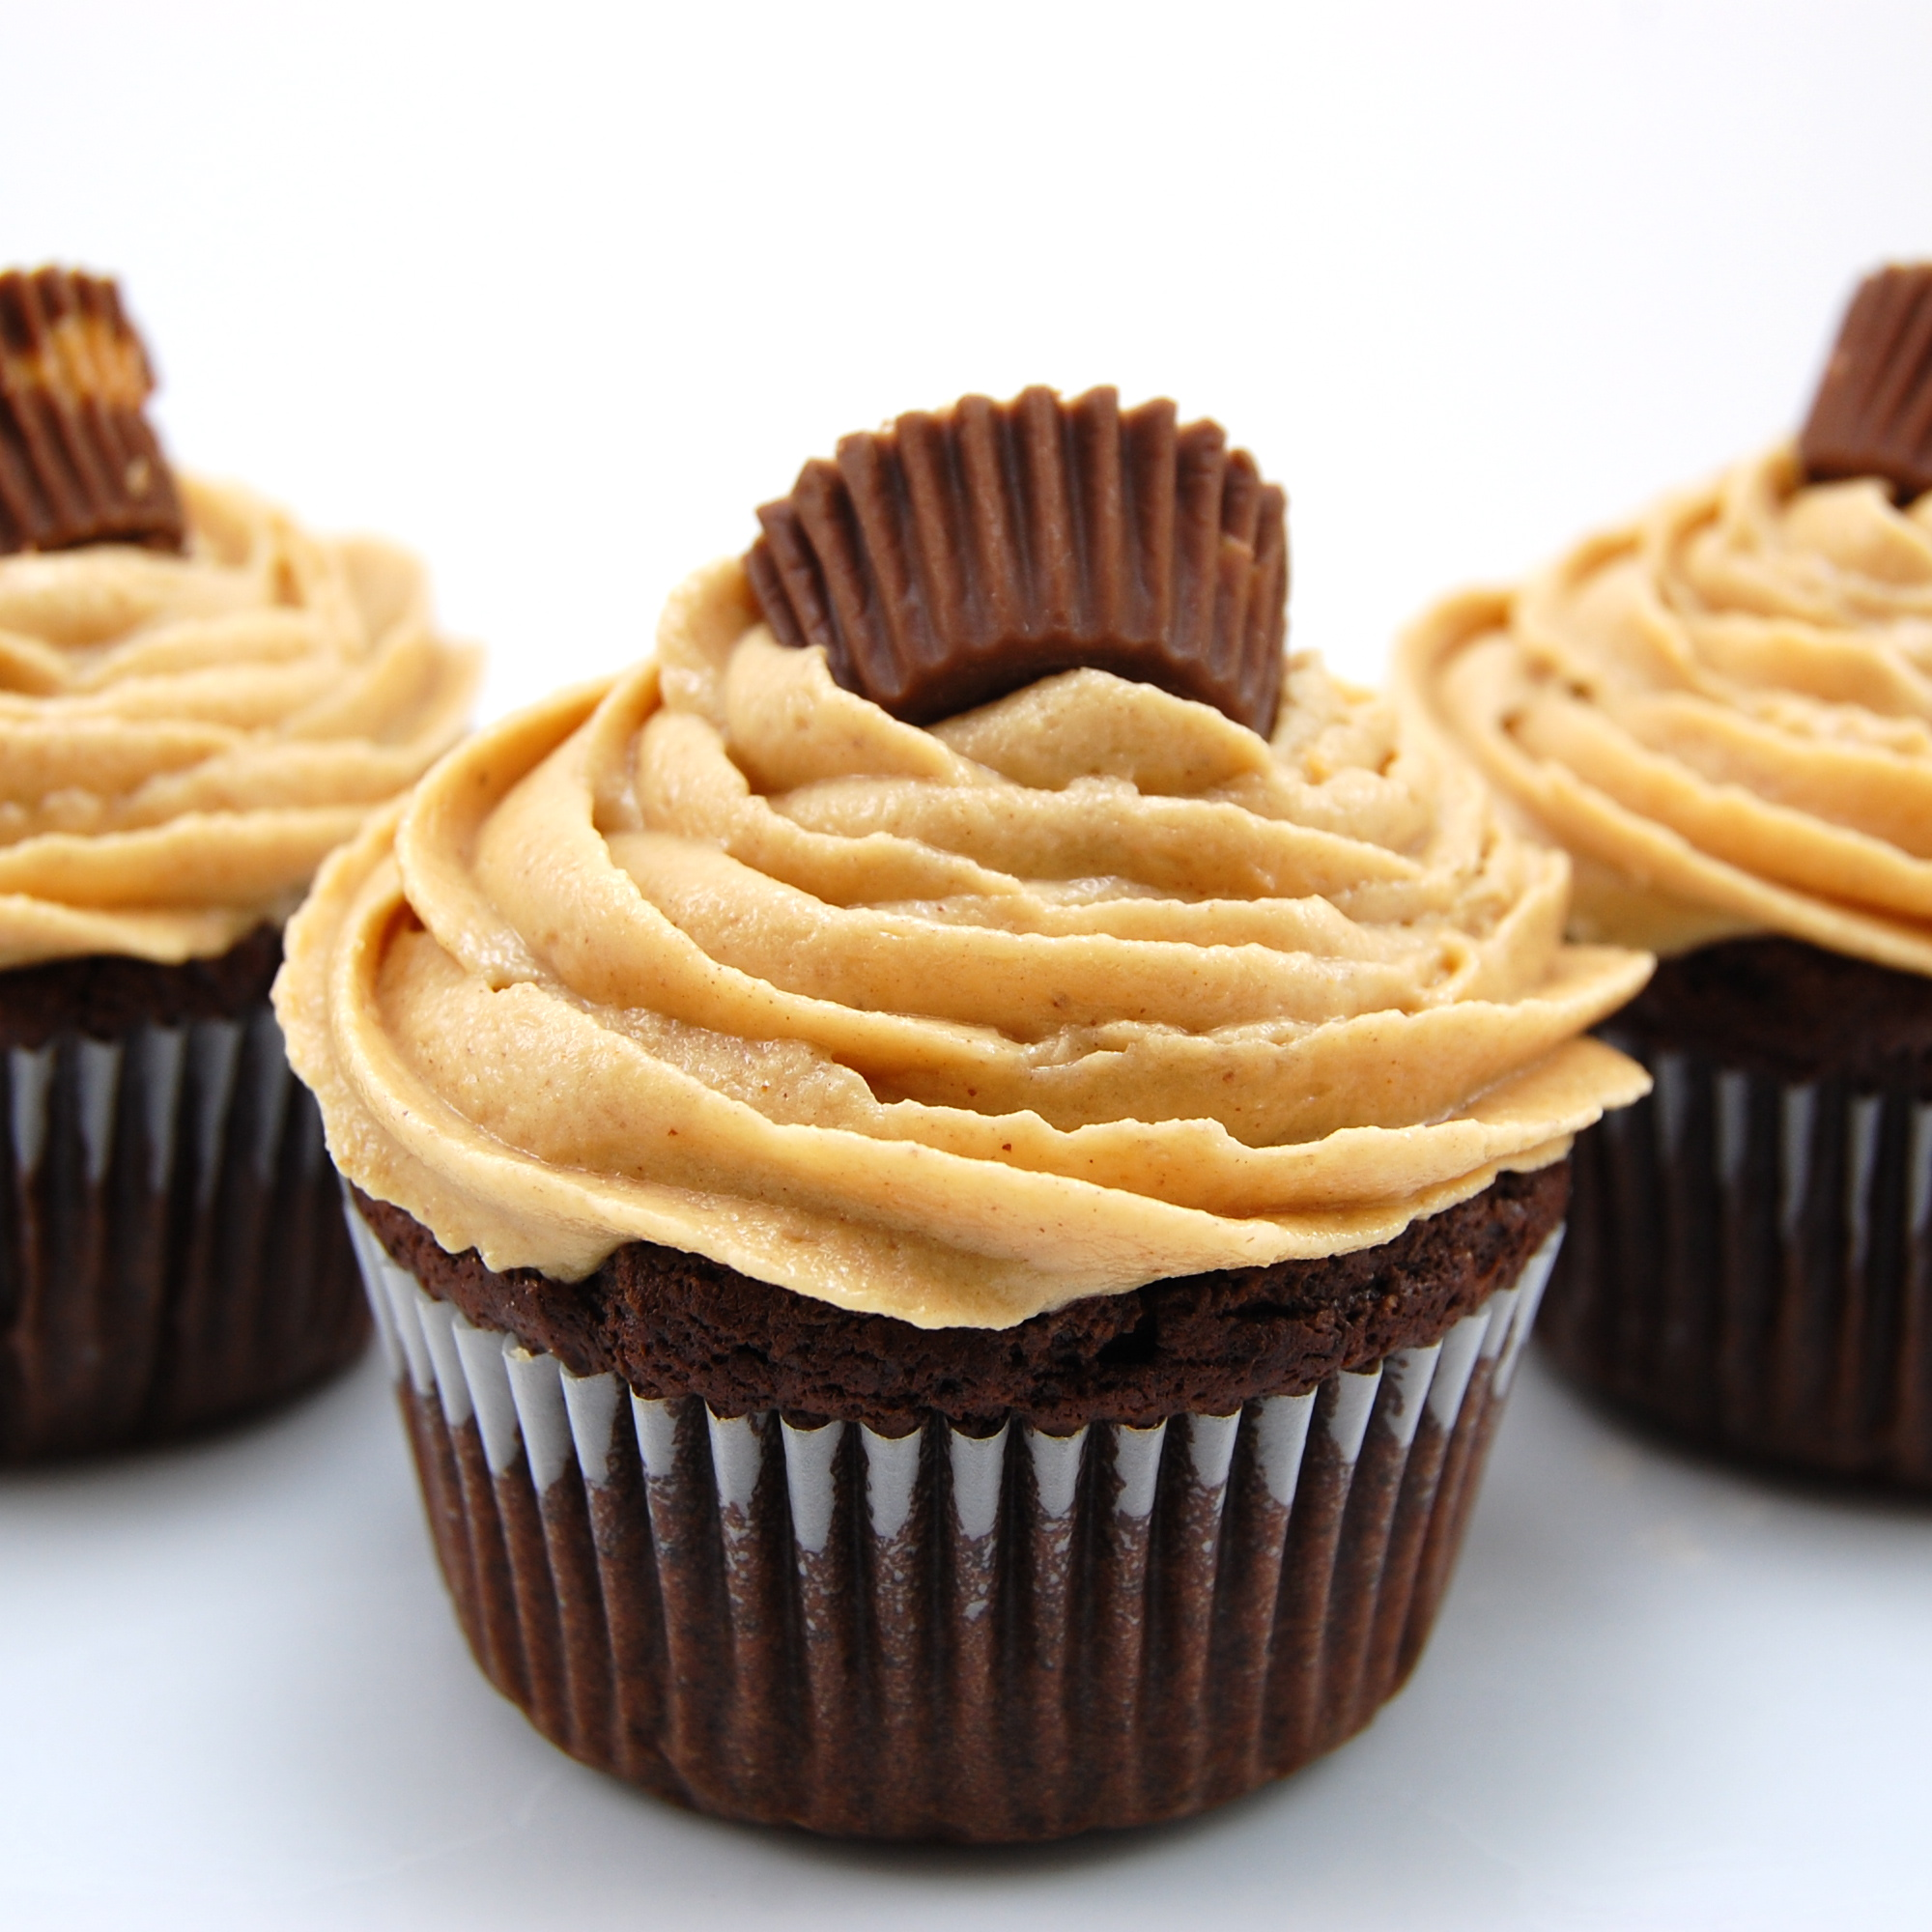 Chocolate Peanut Butter Cup Cupcakes with Peanut Butter Buttercream Icing